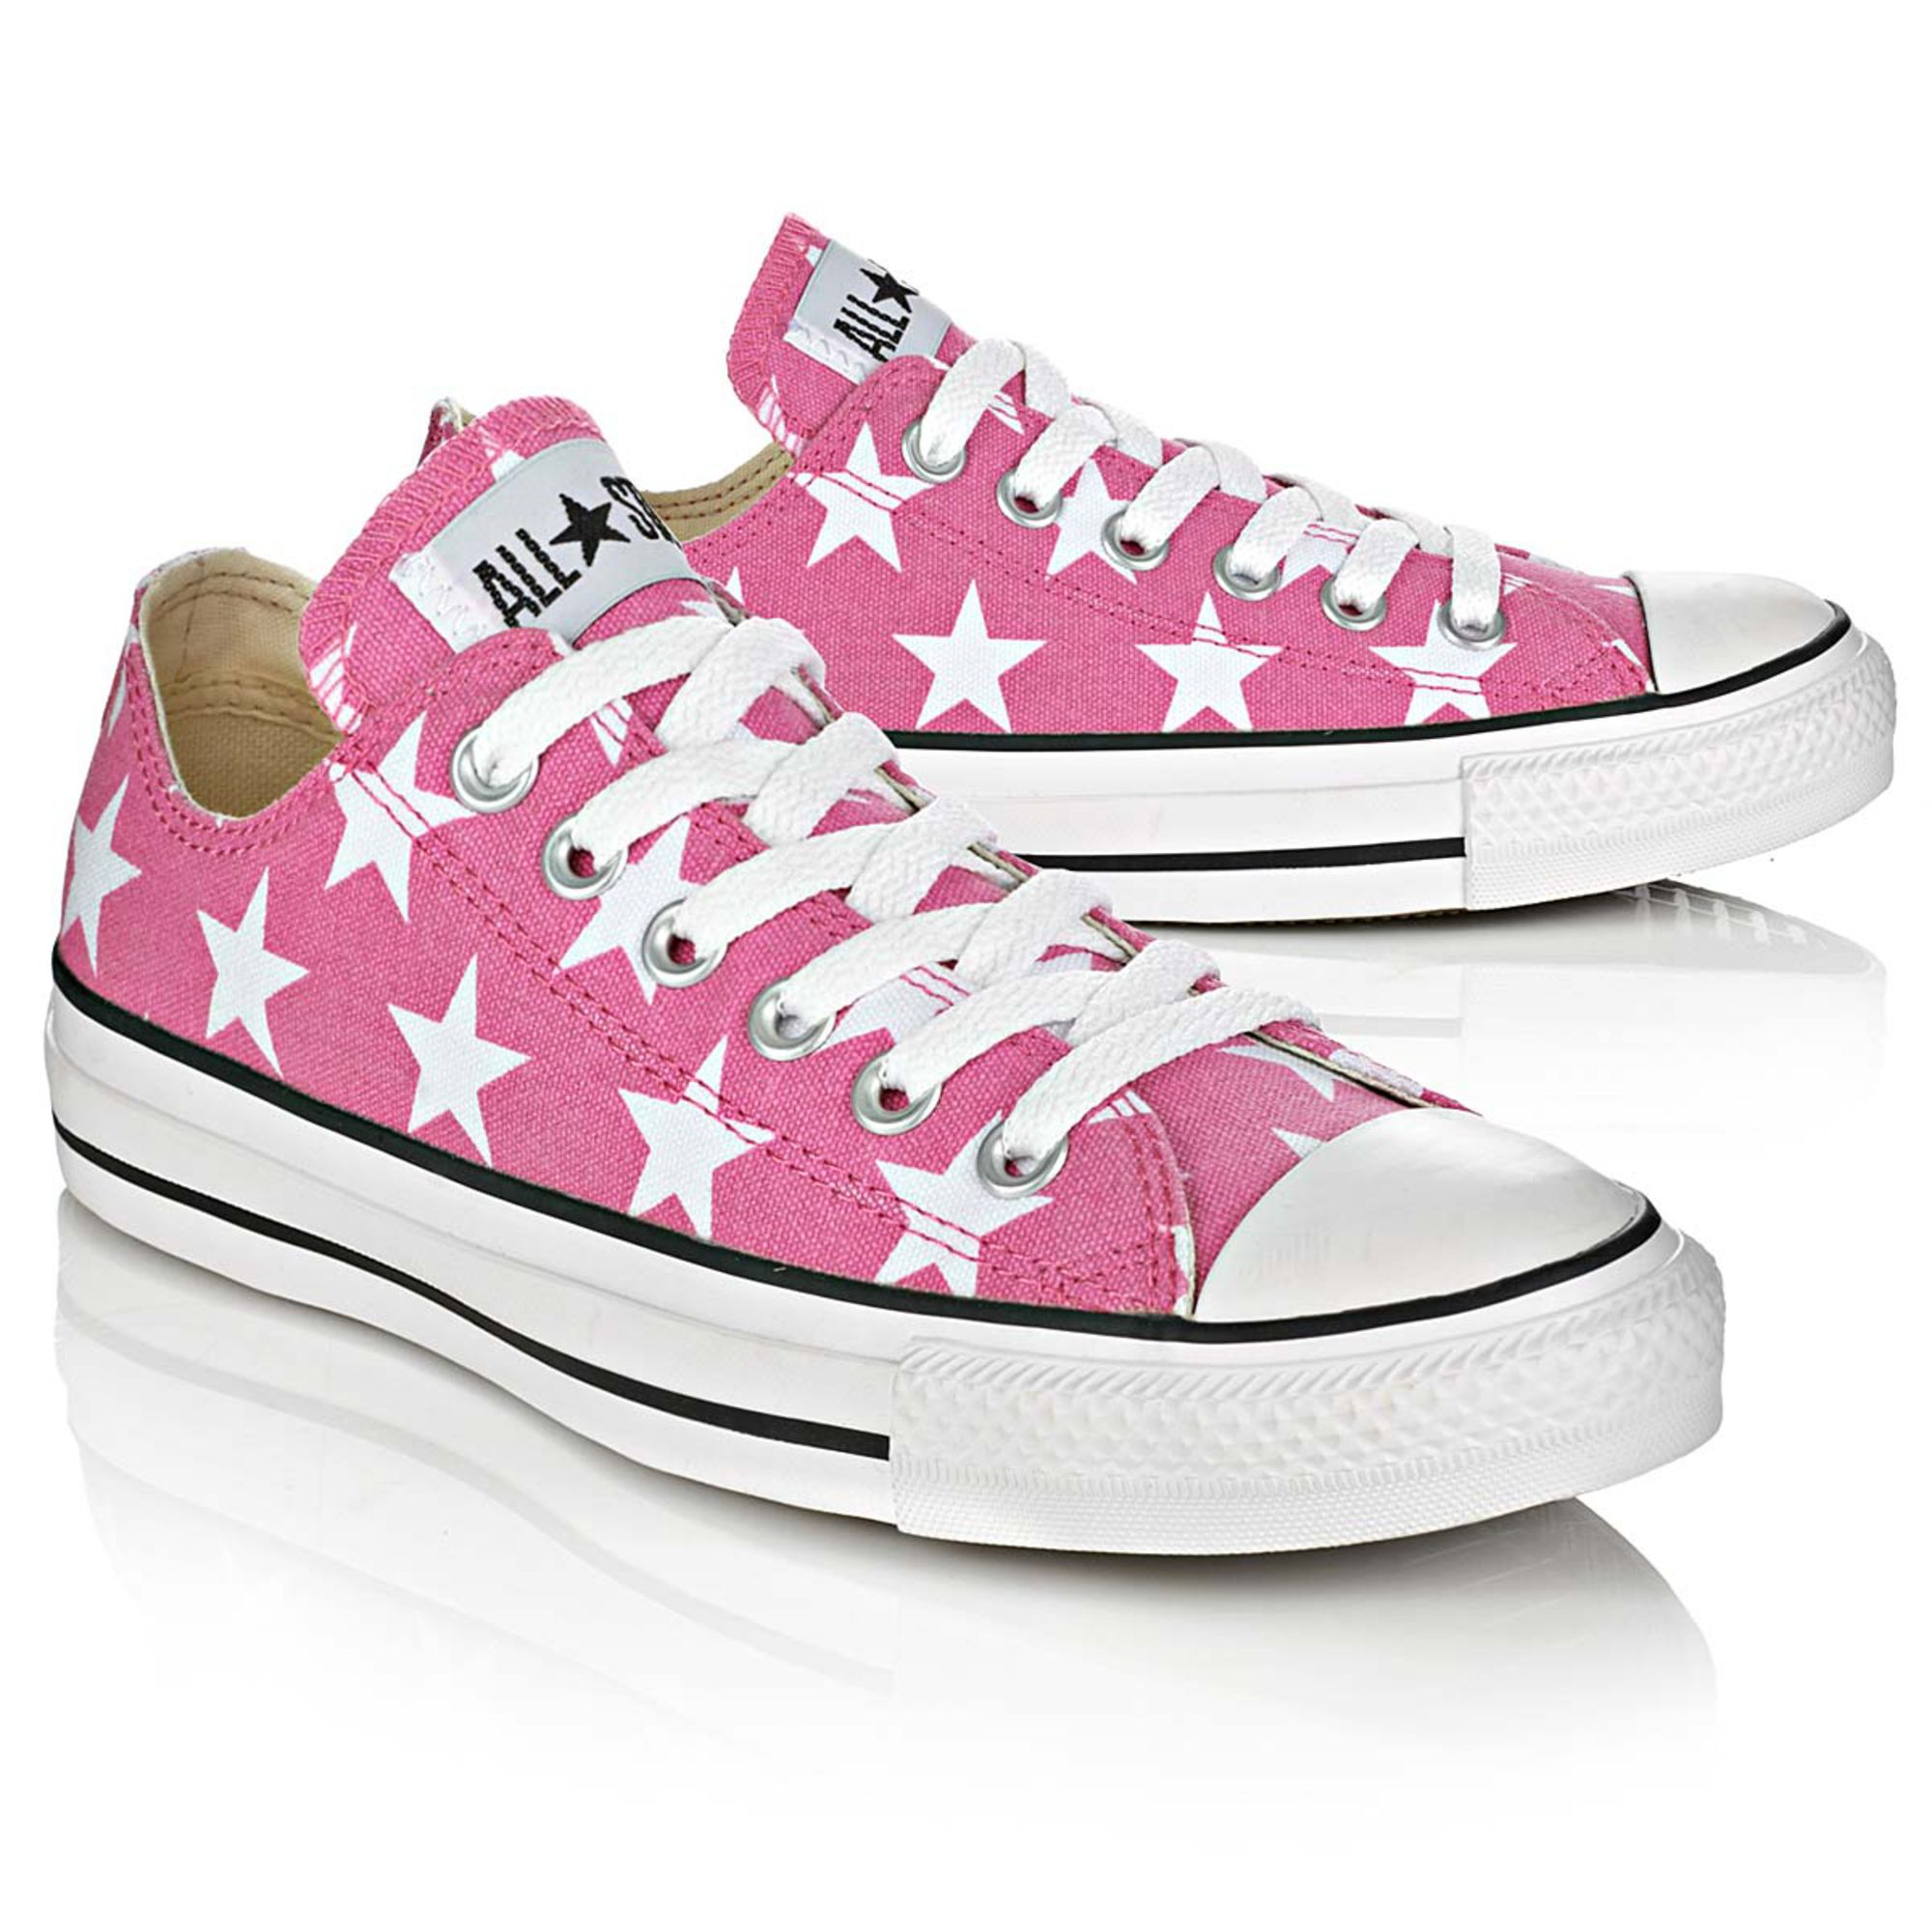 223252f49771 @Impressionen Gummersbach.de #pink #all stars with #stars, in hot pink